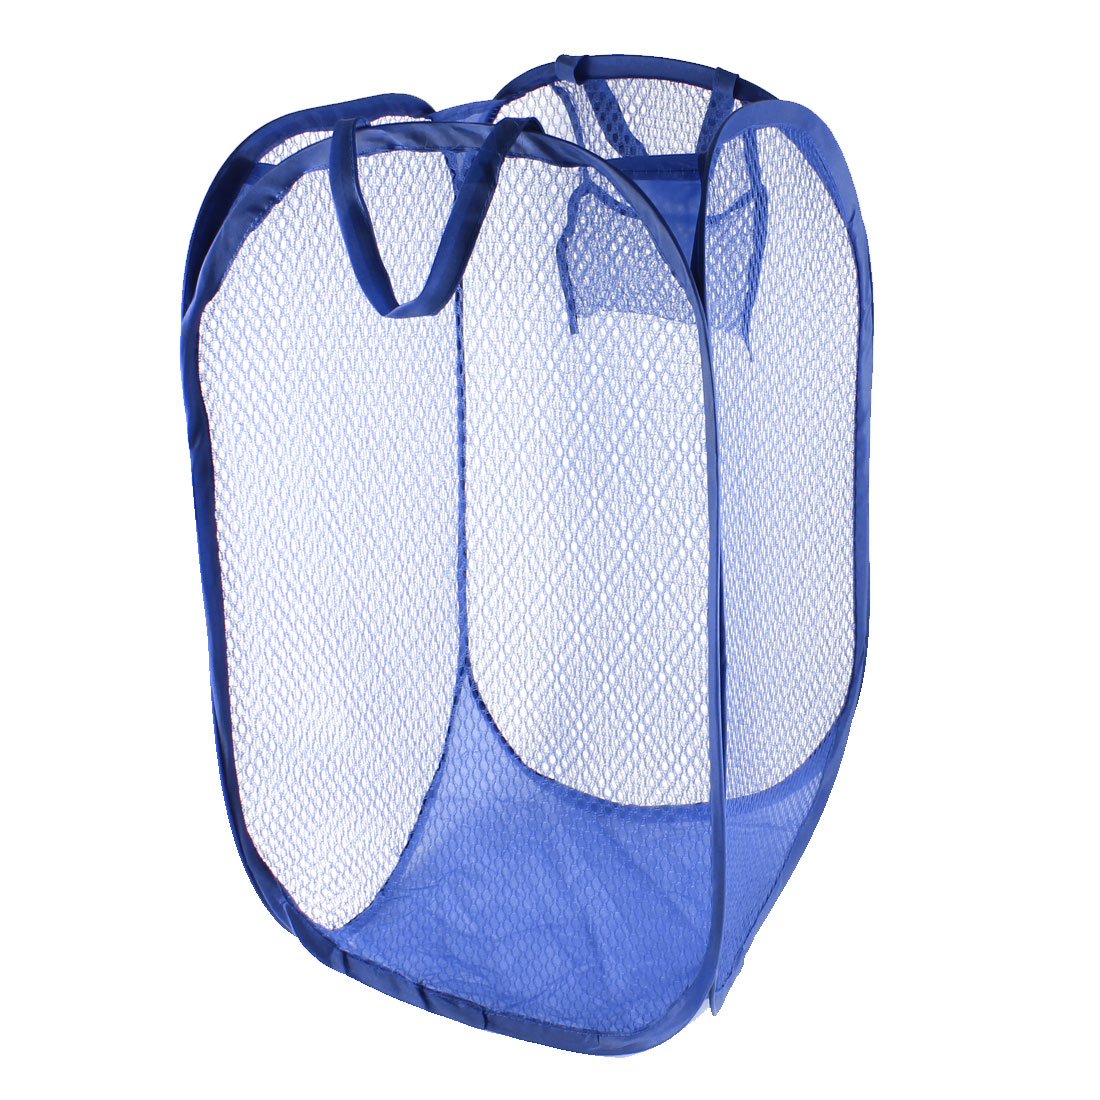 Home Laundry Foldable Mesh Nylon Underwear Clothing Washing Bag Blue